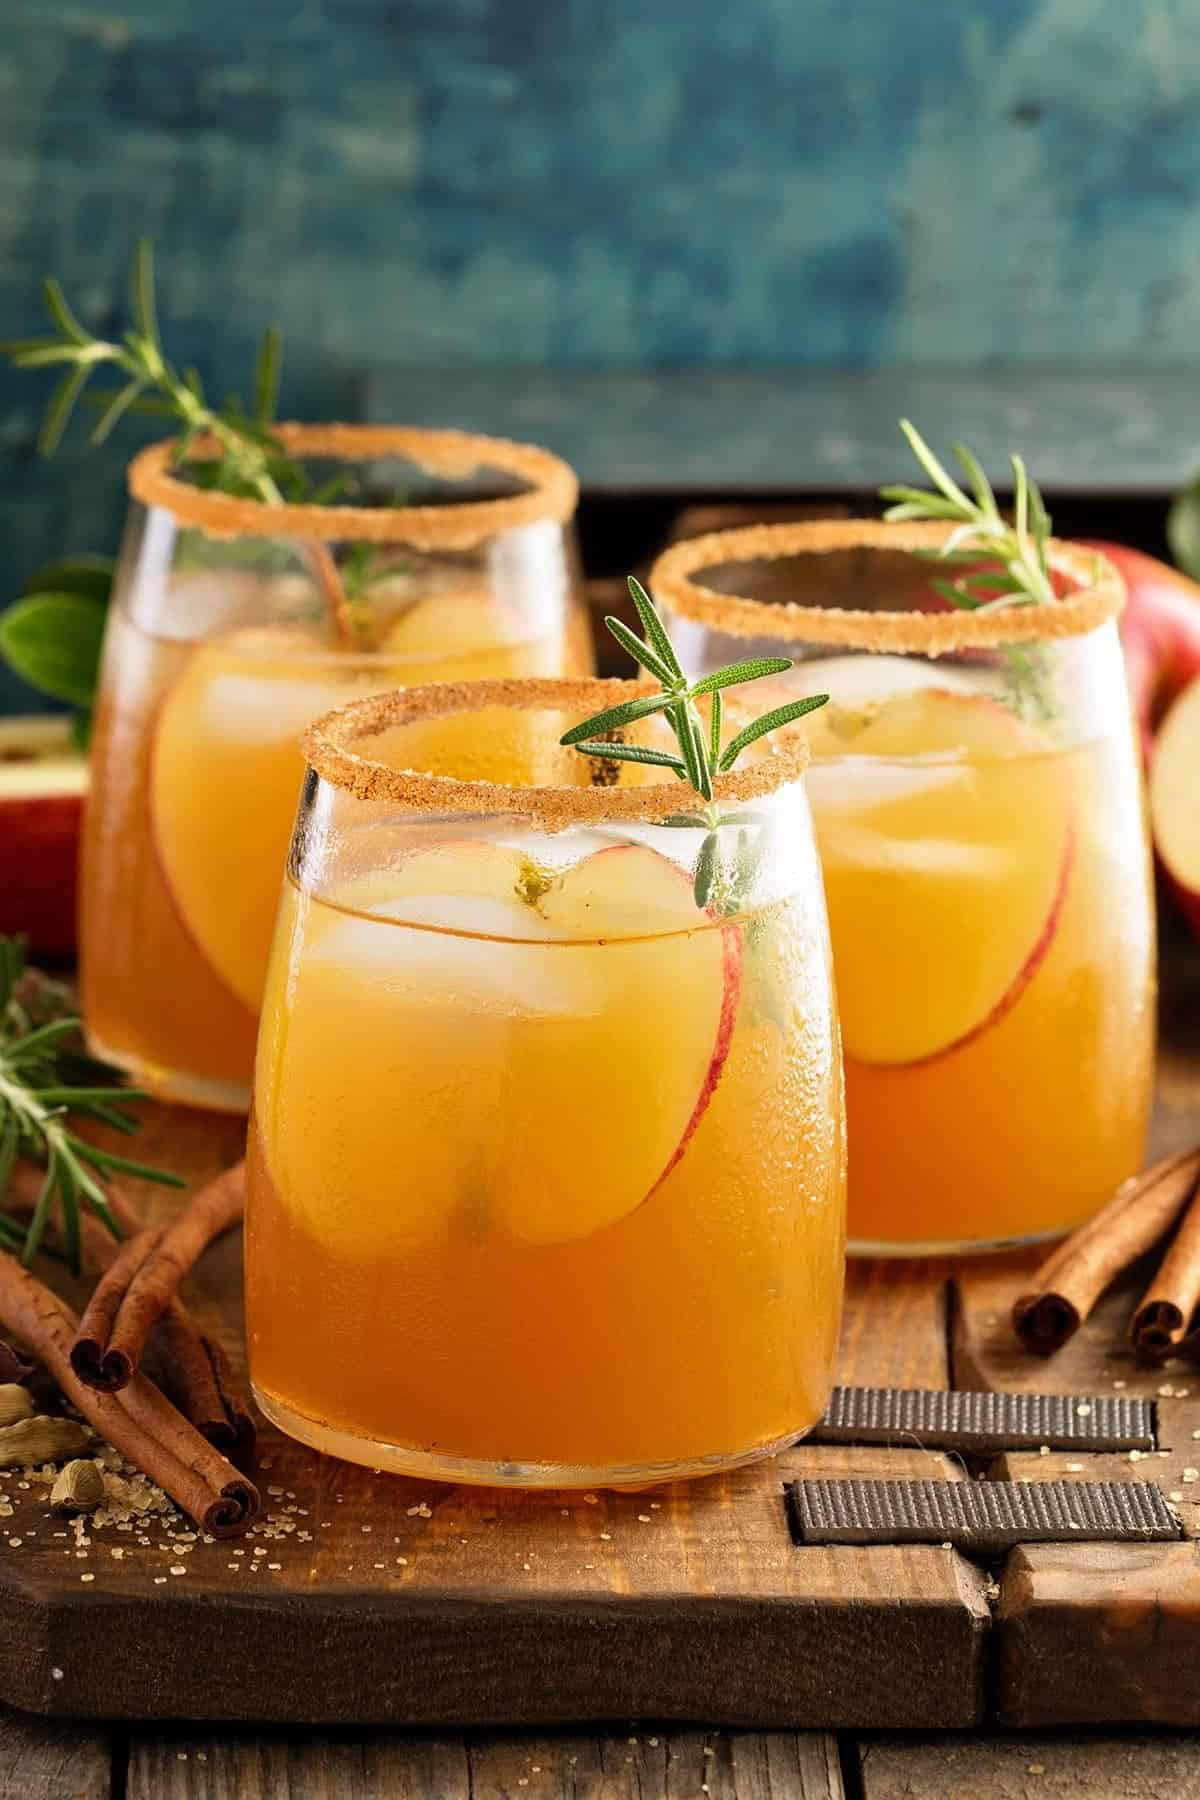 Several glasses of Caramel Apple Sangria with apple slices and rosemary garnish